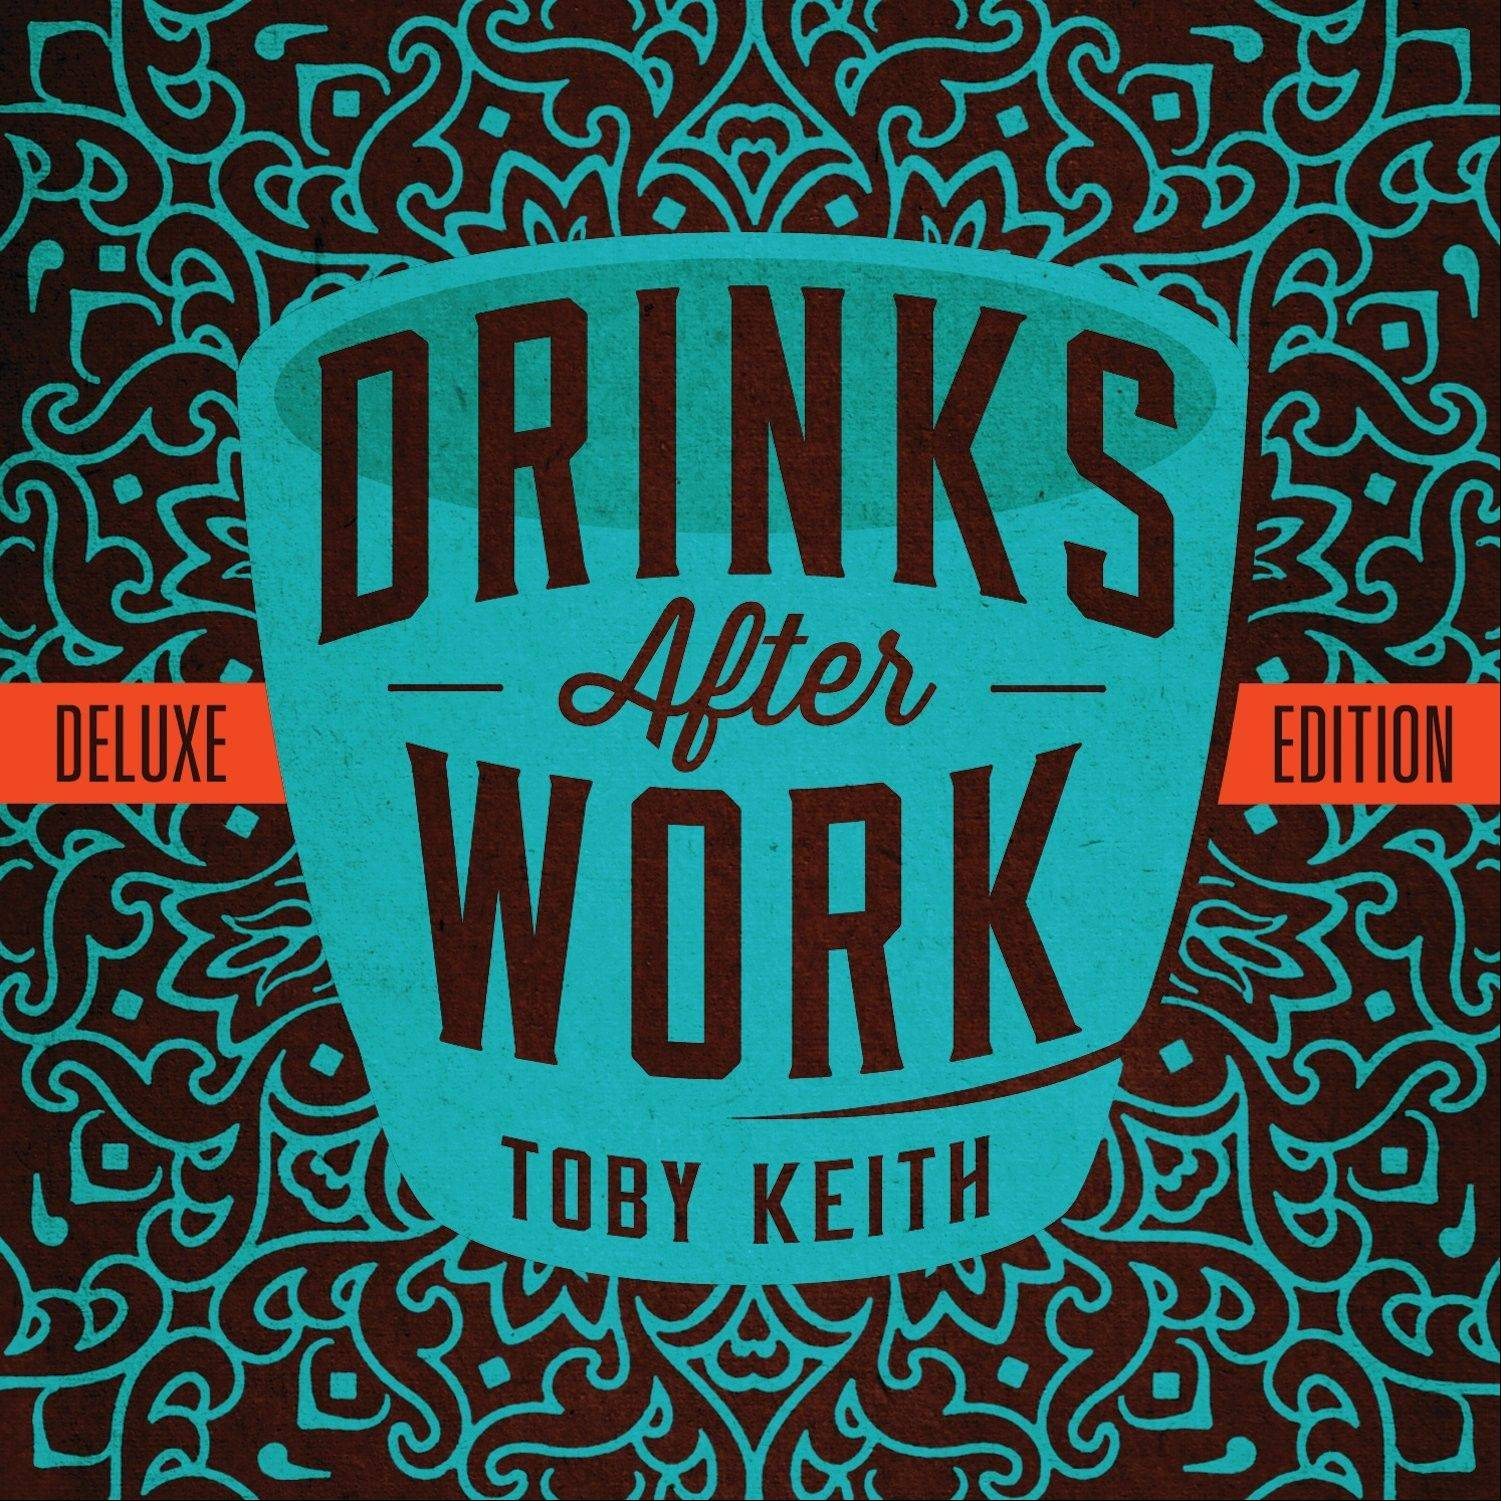 �Drinks After Work,� the latest release by Toby Keith, shows he�s still at the top of his game.